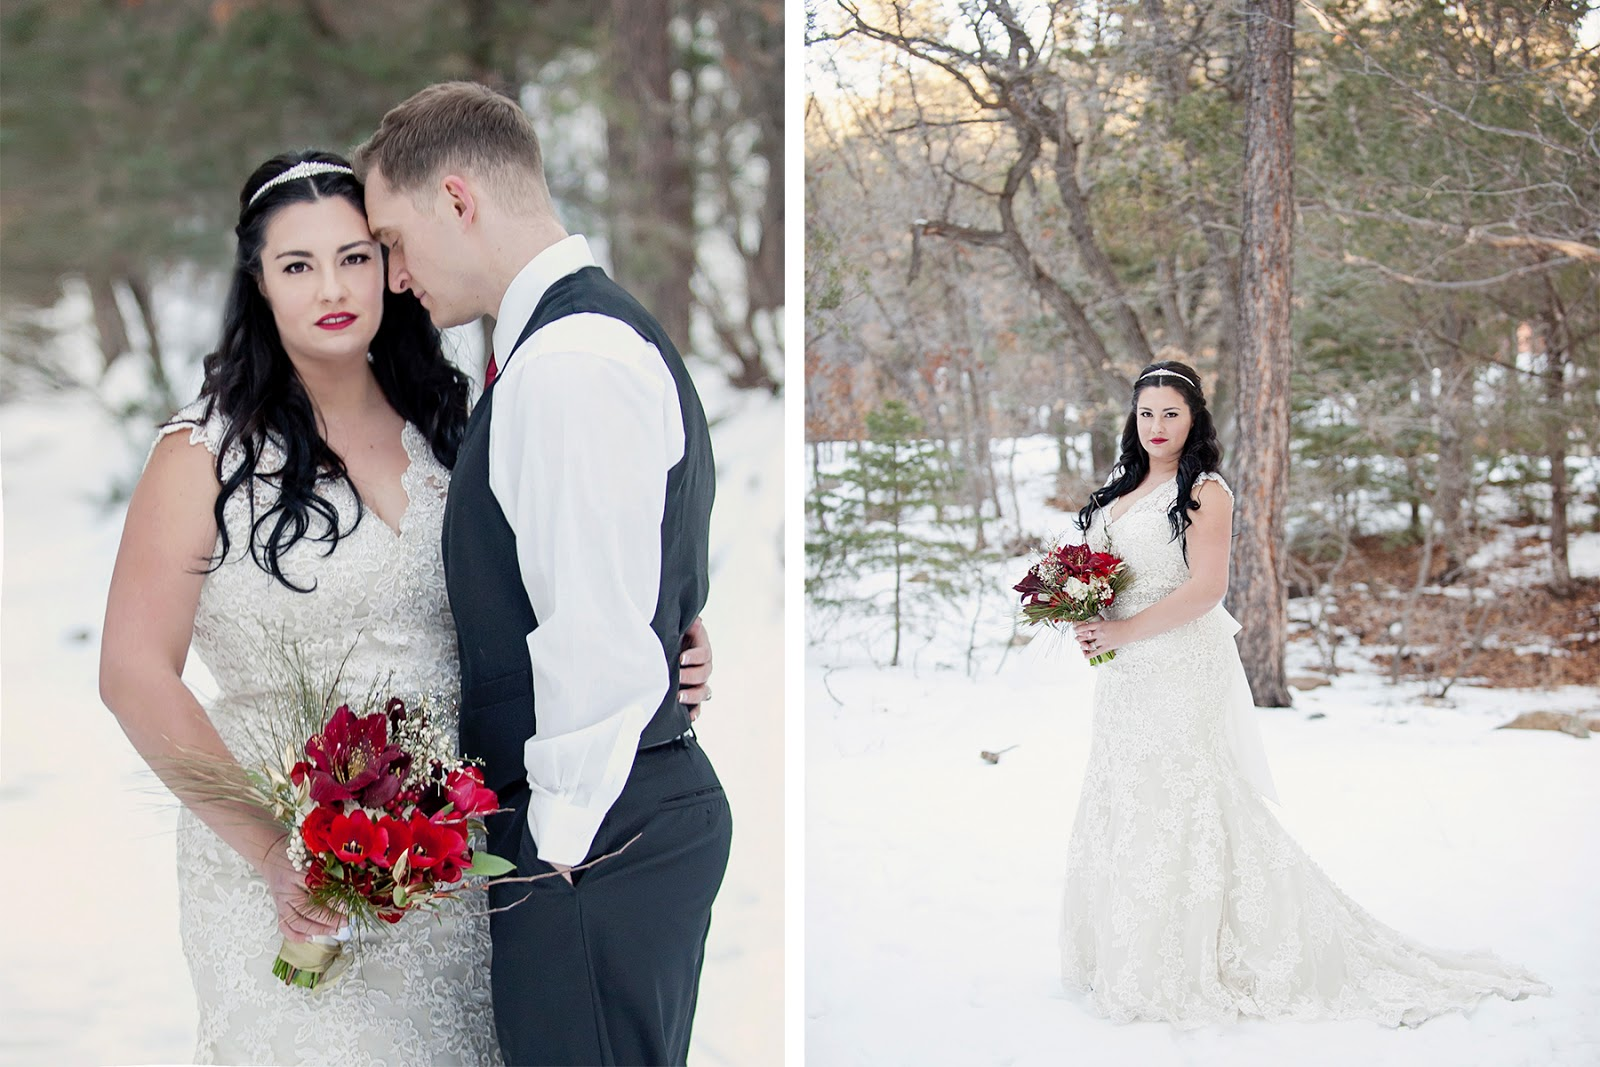 winter wedding, snow white, snow white inspired wedding, snow white wedding, marsala, marsala bouquet, wedding photographers in albuquerque, maura jane photography, new mexico weddings, weddings in albuquerque, albuquerque wedding photographers, santa fe weddings, santa fe wedding photographers, vow renewal